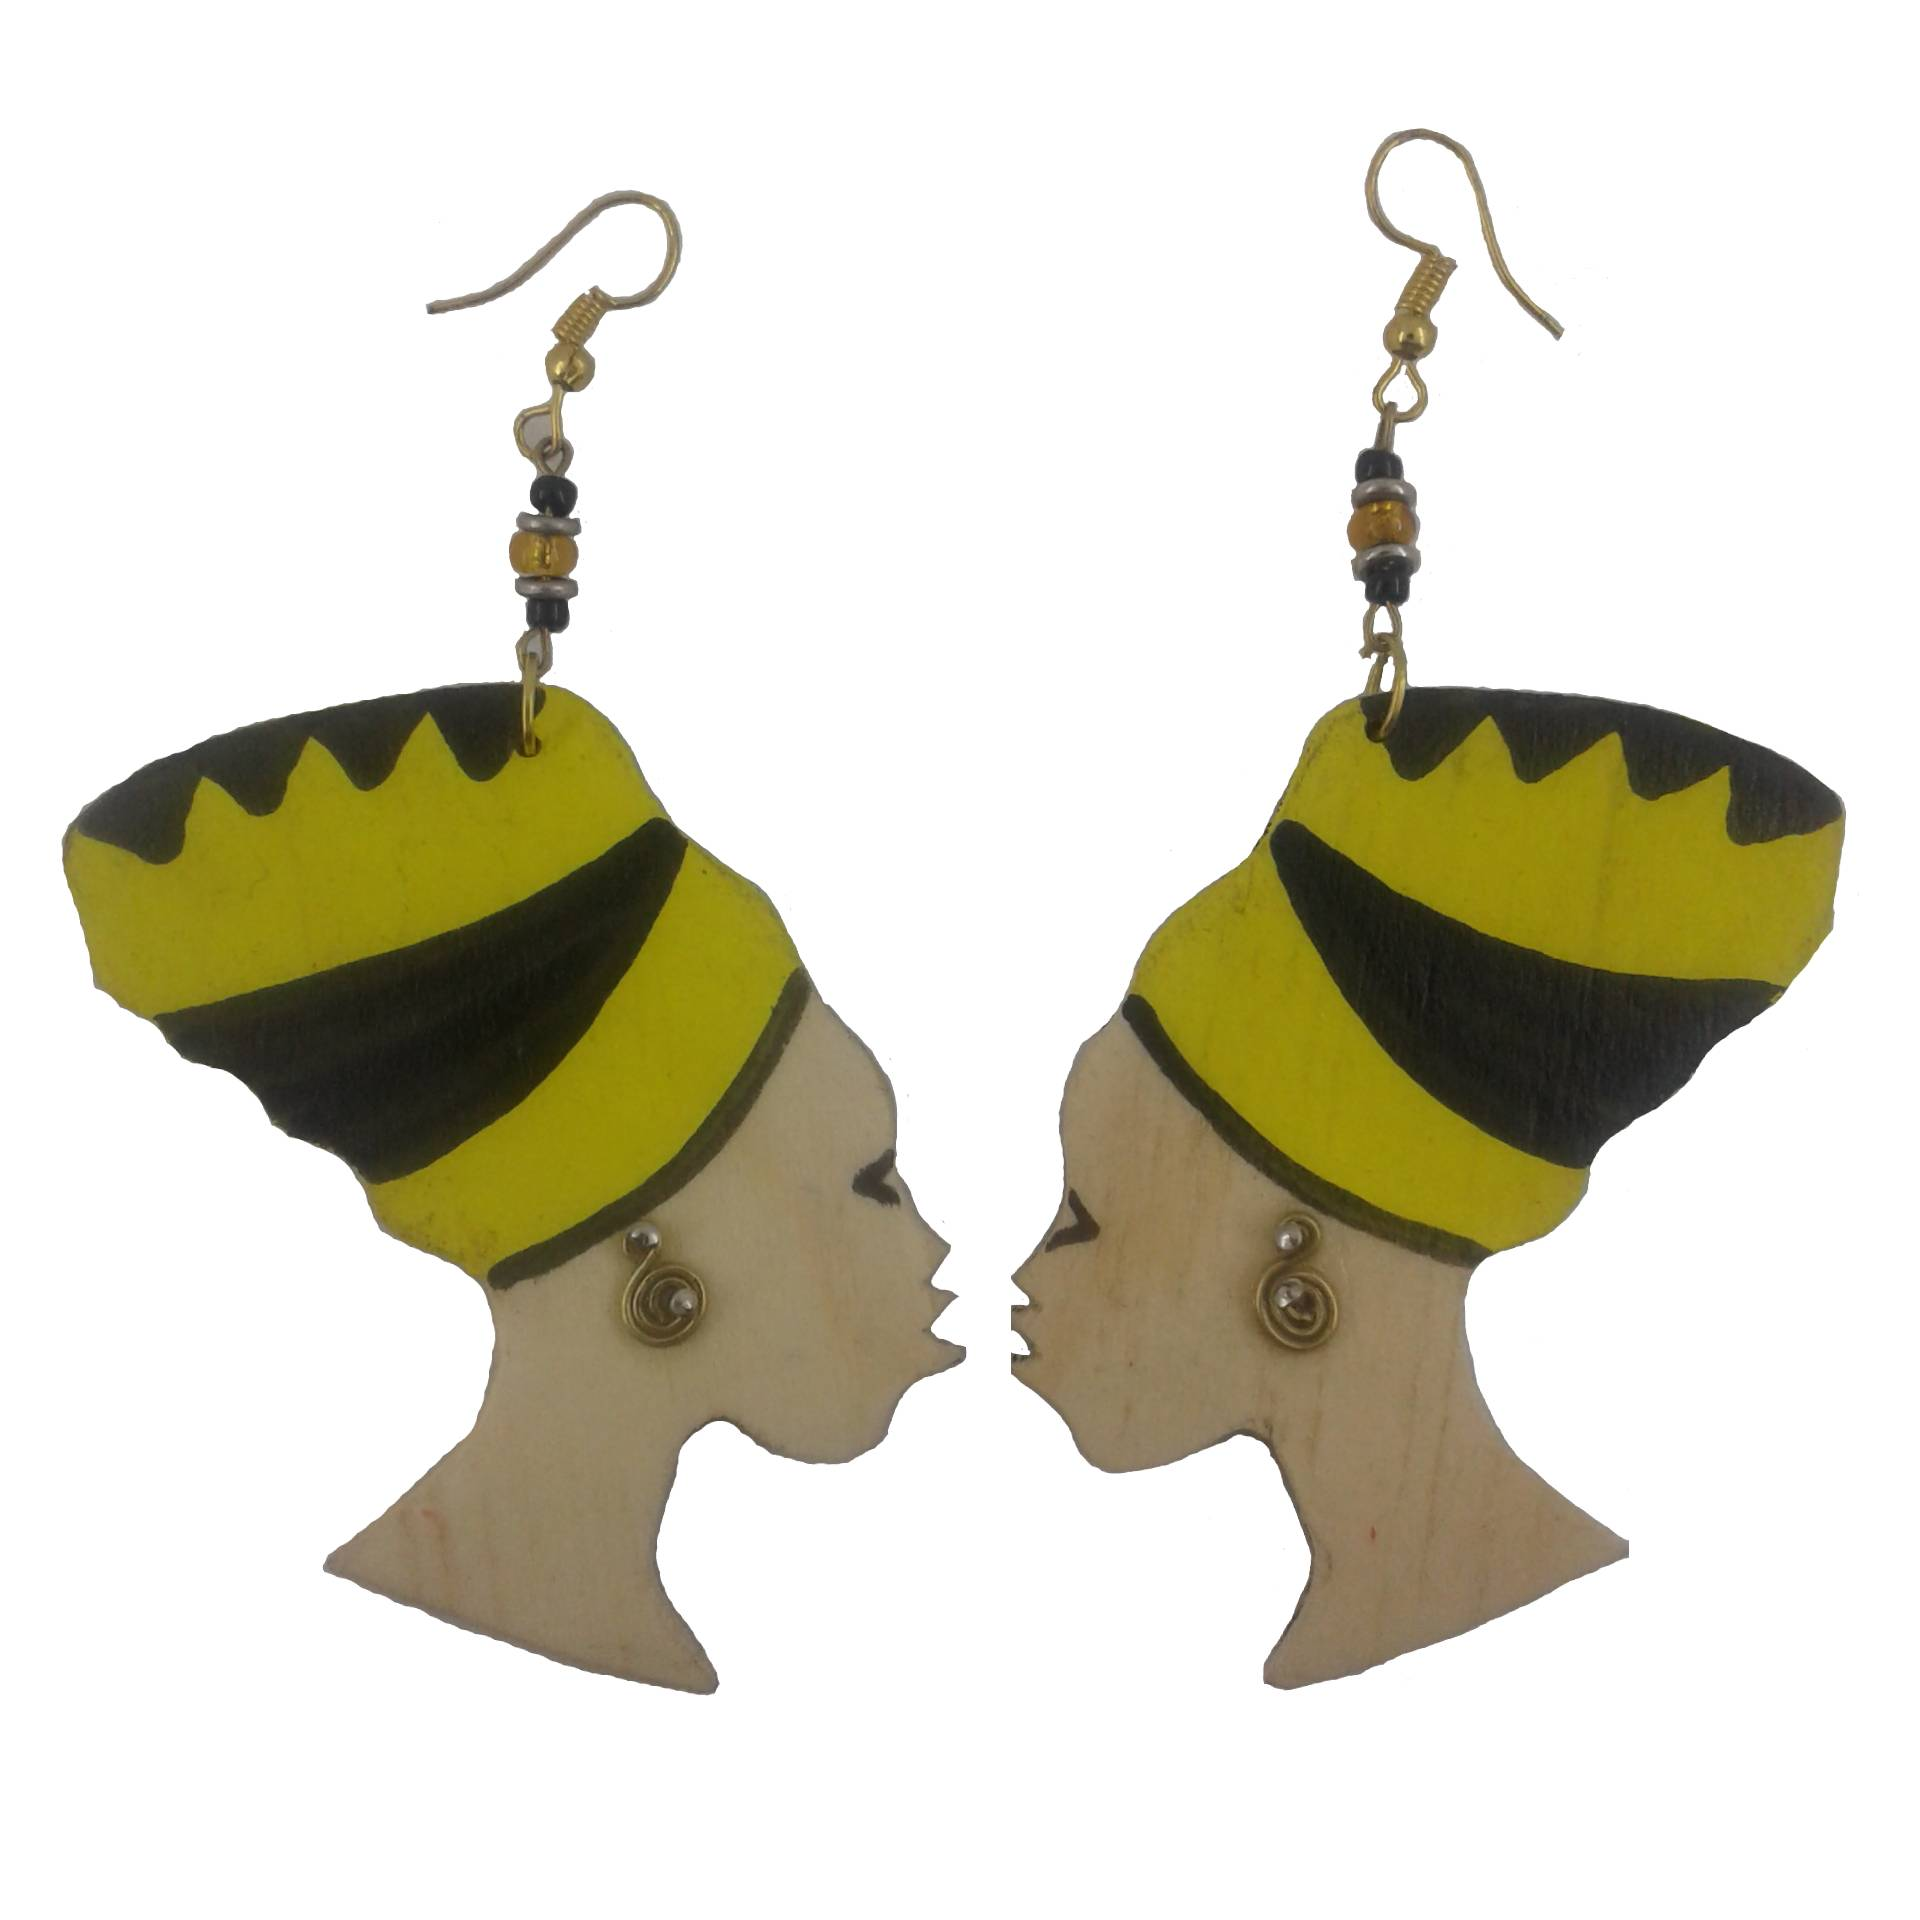 Afro dangle earrings